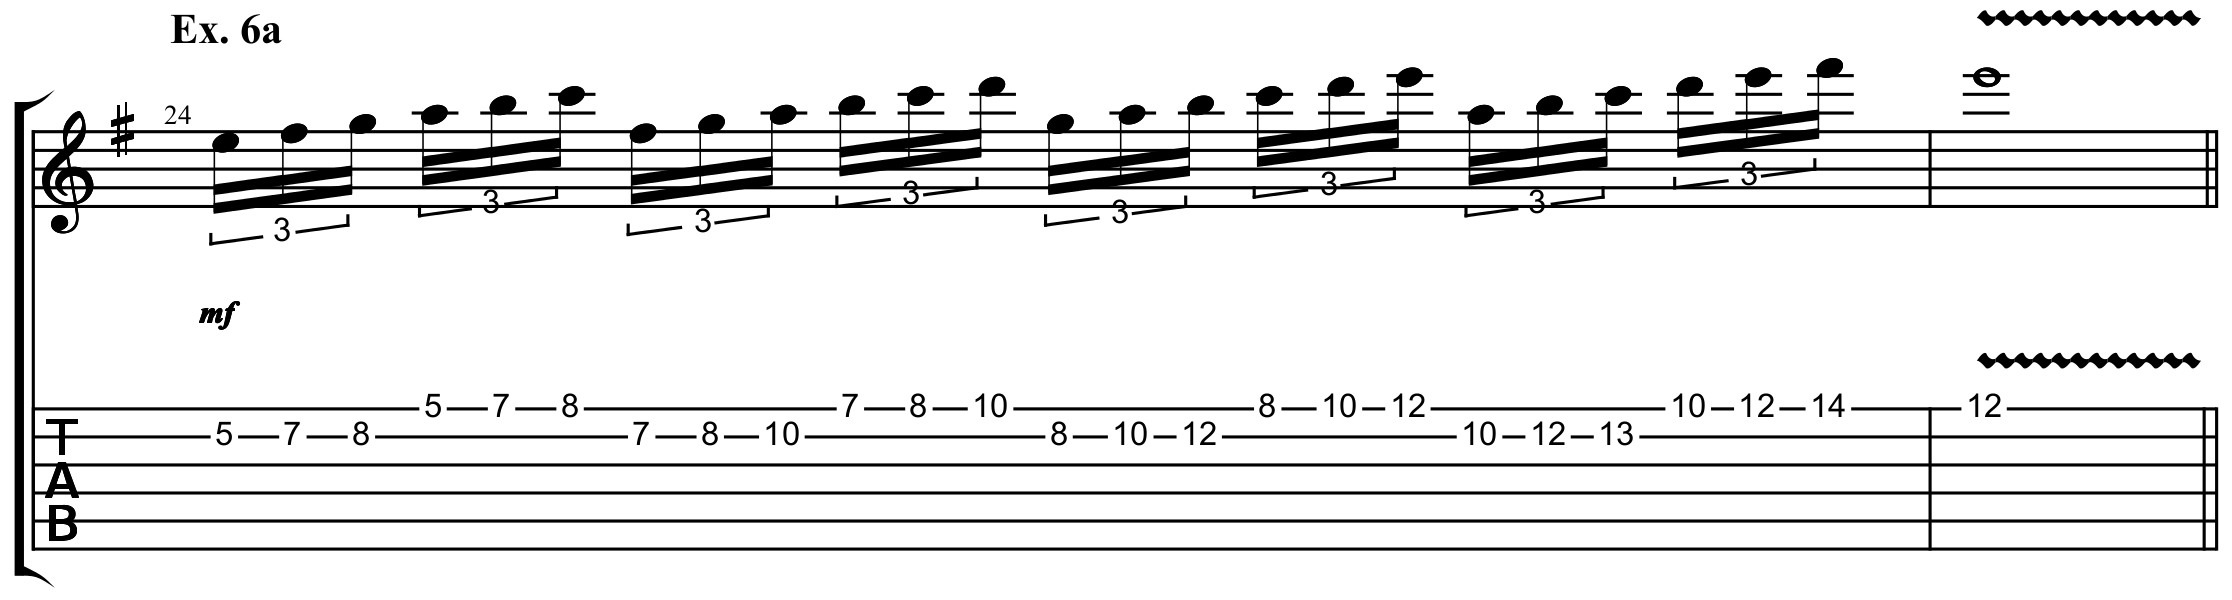 a two string lead guitar pattern played through many shapes